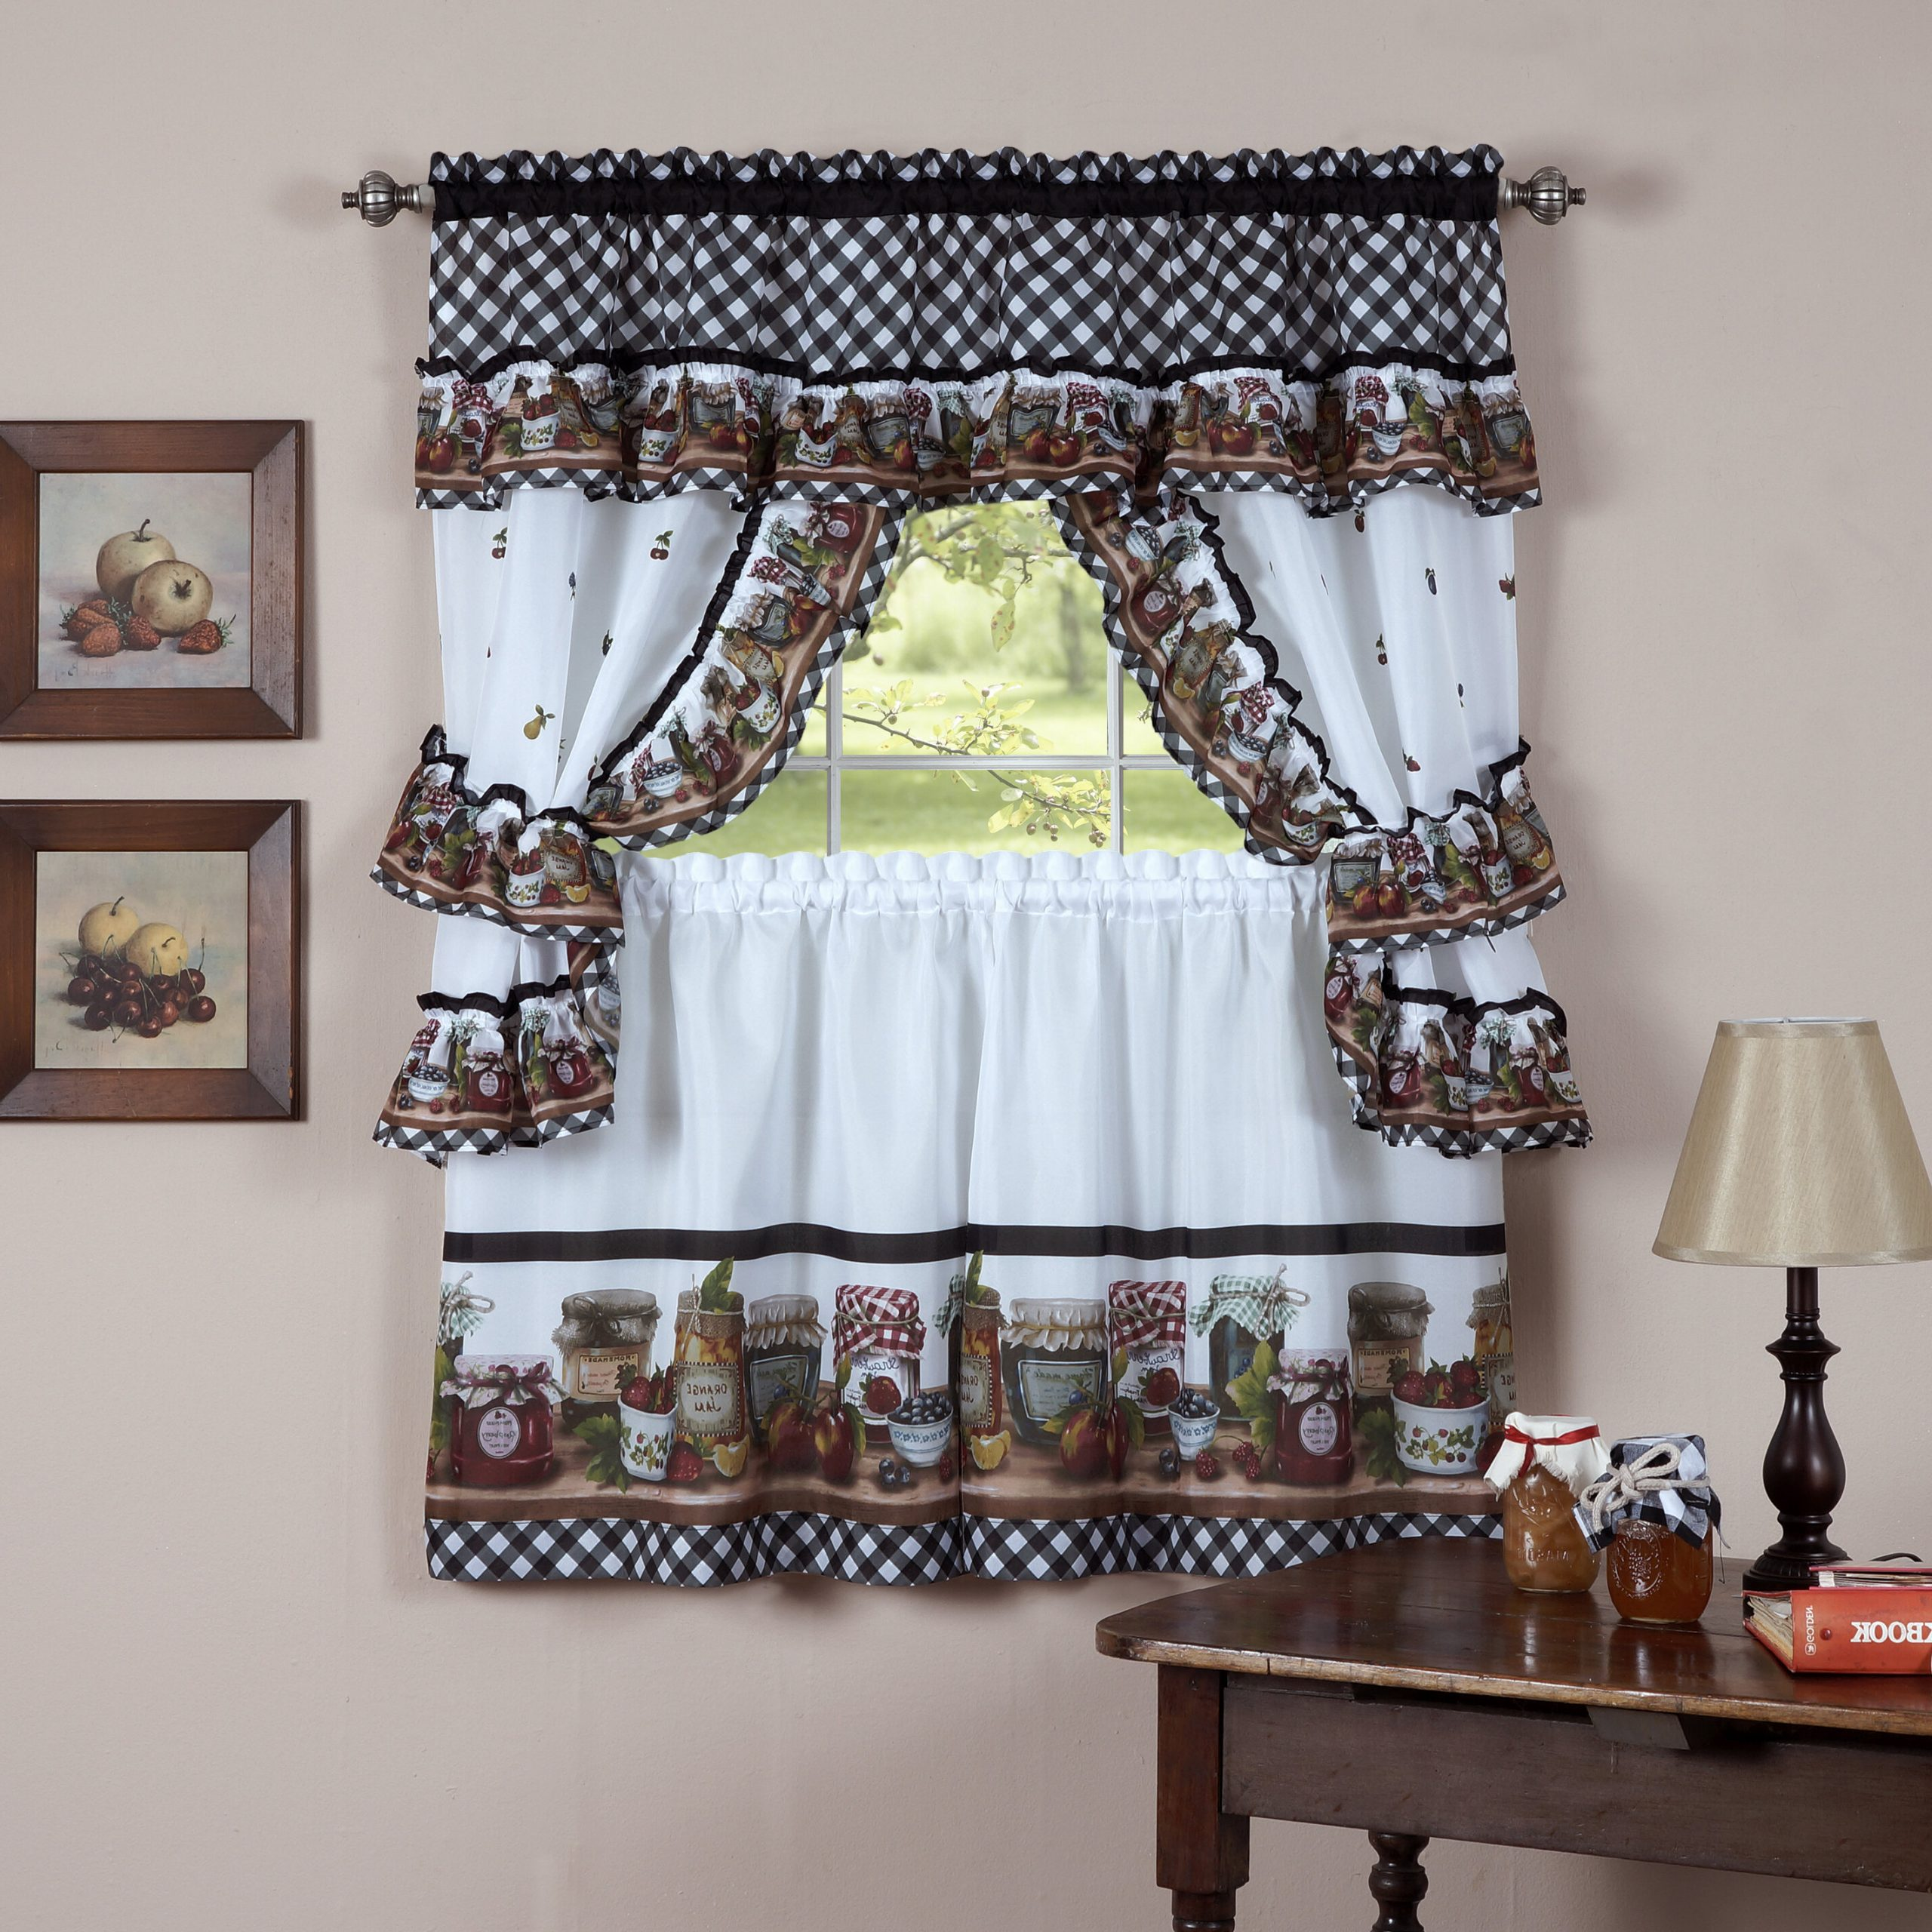 Complete Cottage Curtain Sets With An Antique And Aubergine Grapvine Print Intended For 2021 Guimauve Mason Jar Cottage Kitchen Window Floral/flower Rod Pocket Set (View 2 of 20)